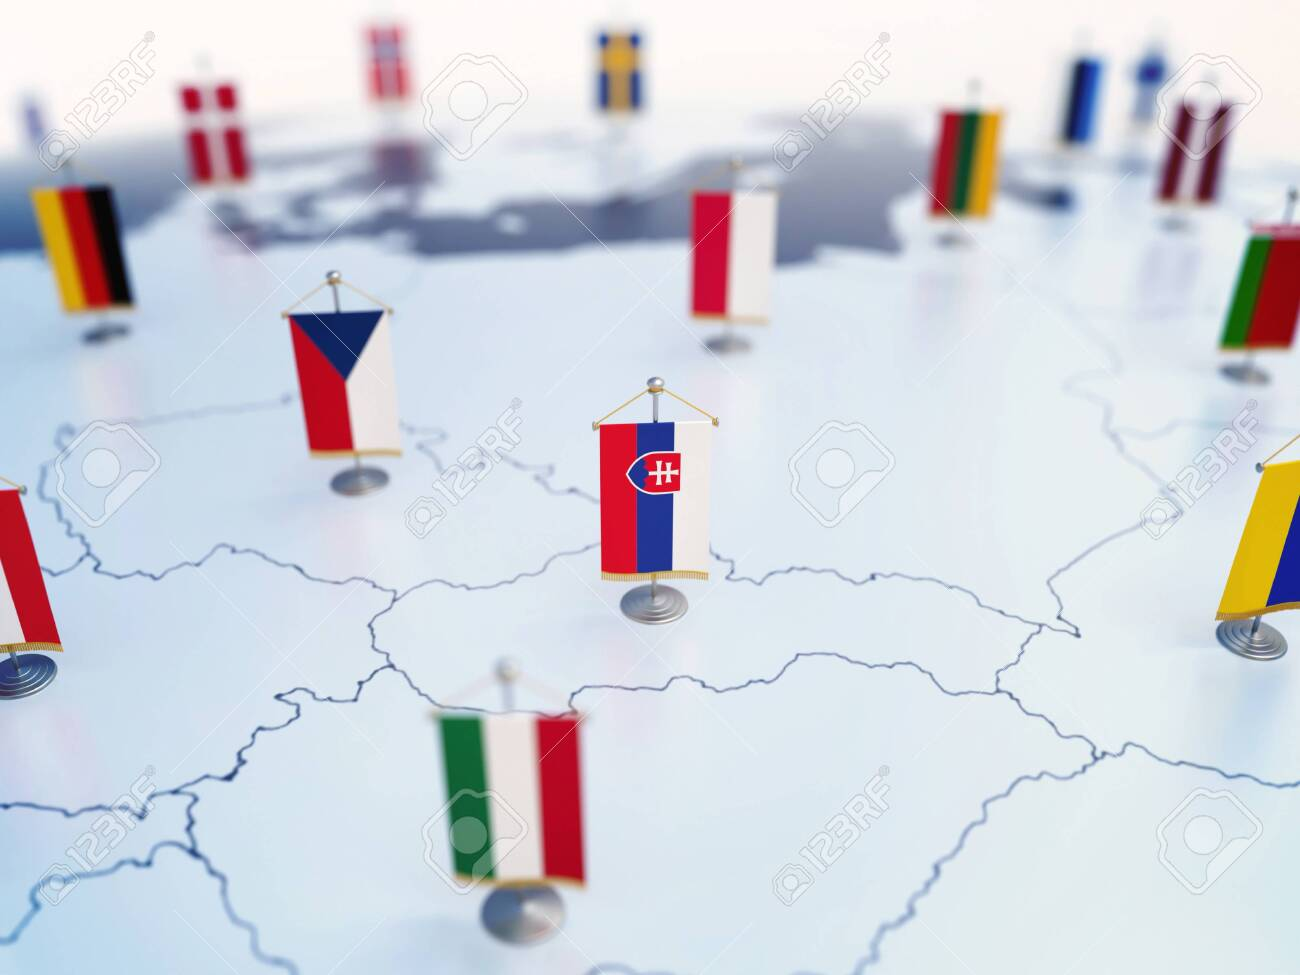 Flag of Slovakia in focus among other European countries flags. Europe marked with table flags 3d rendering - 131680009